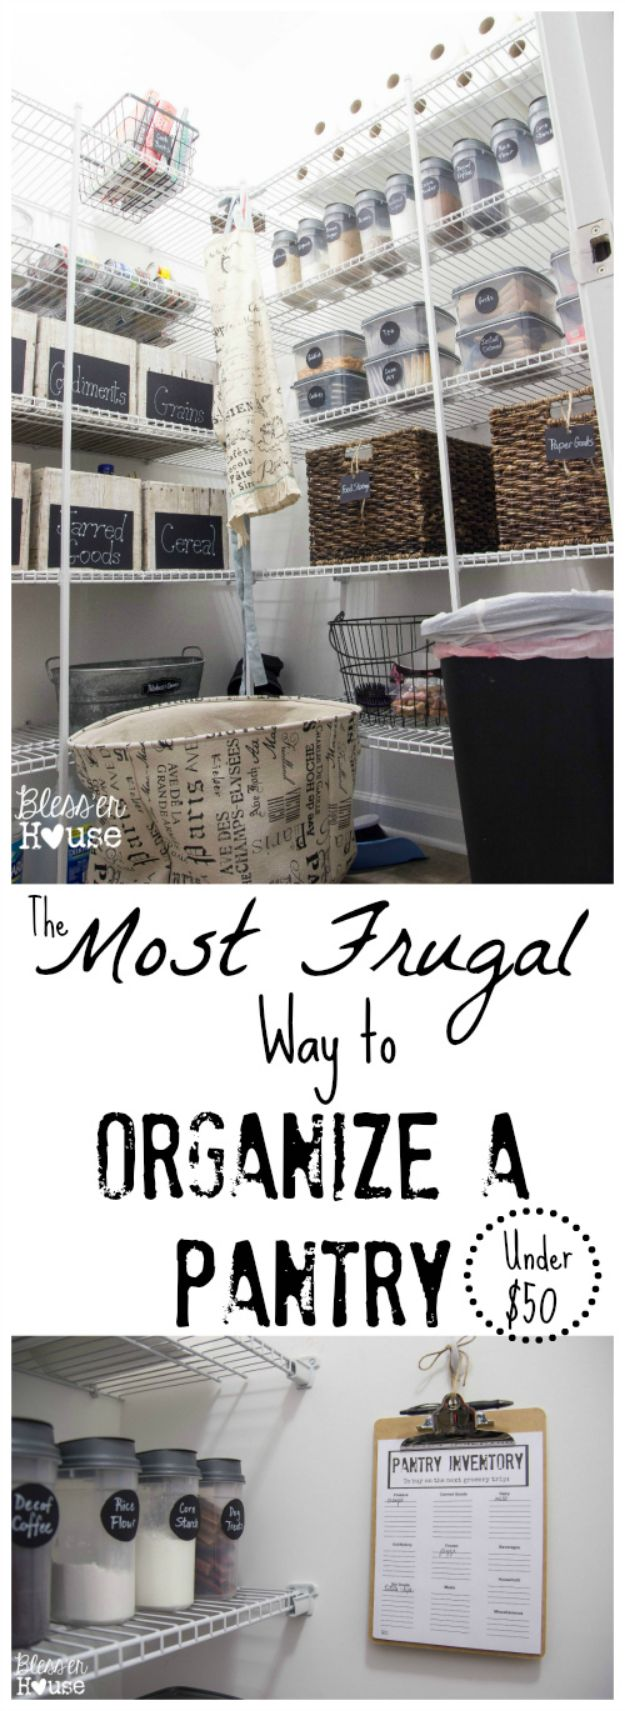 DIY Pantry Organizing Ideas - Frugal Way to Organize a Pantry - Easy Organization for the Kitchen Pantry - Cheap Shelving and Storage Jars, Labels, Containers, Baskets to Organize Cans and Food, Spices